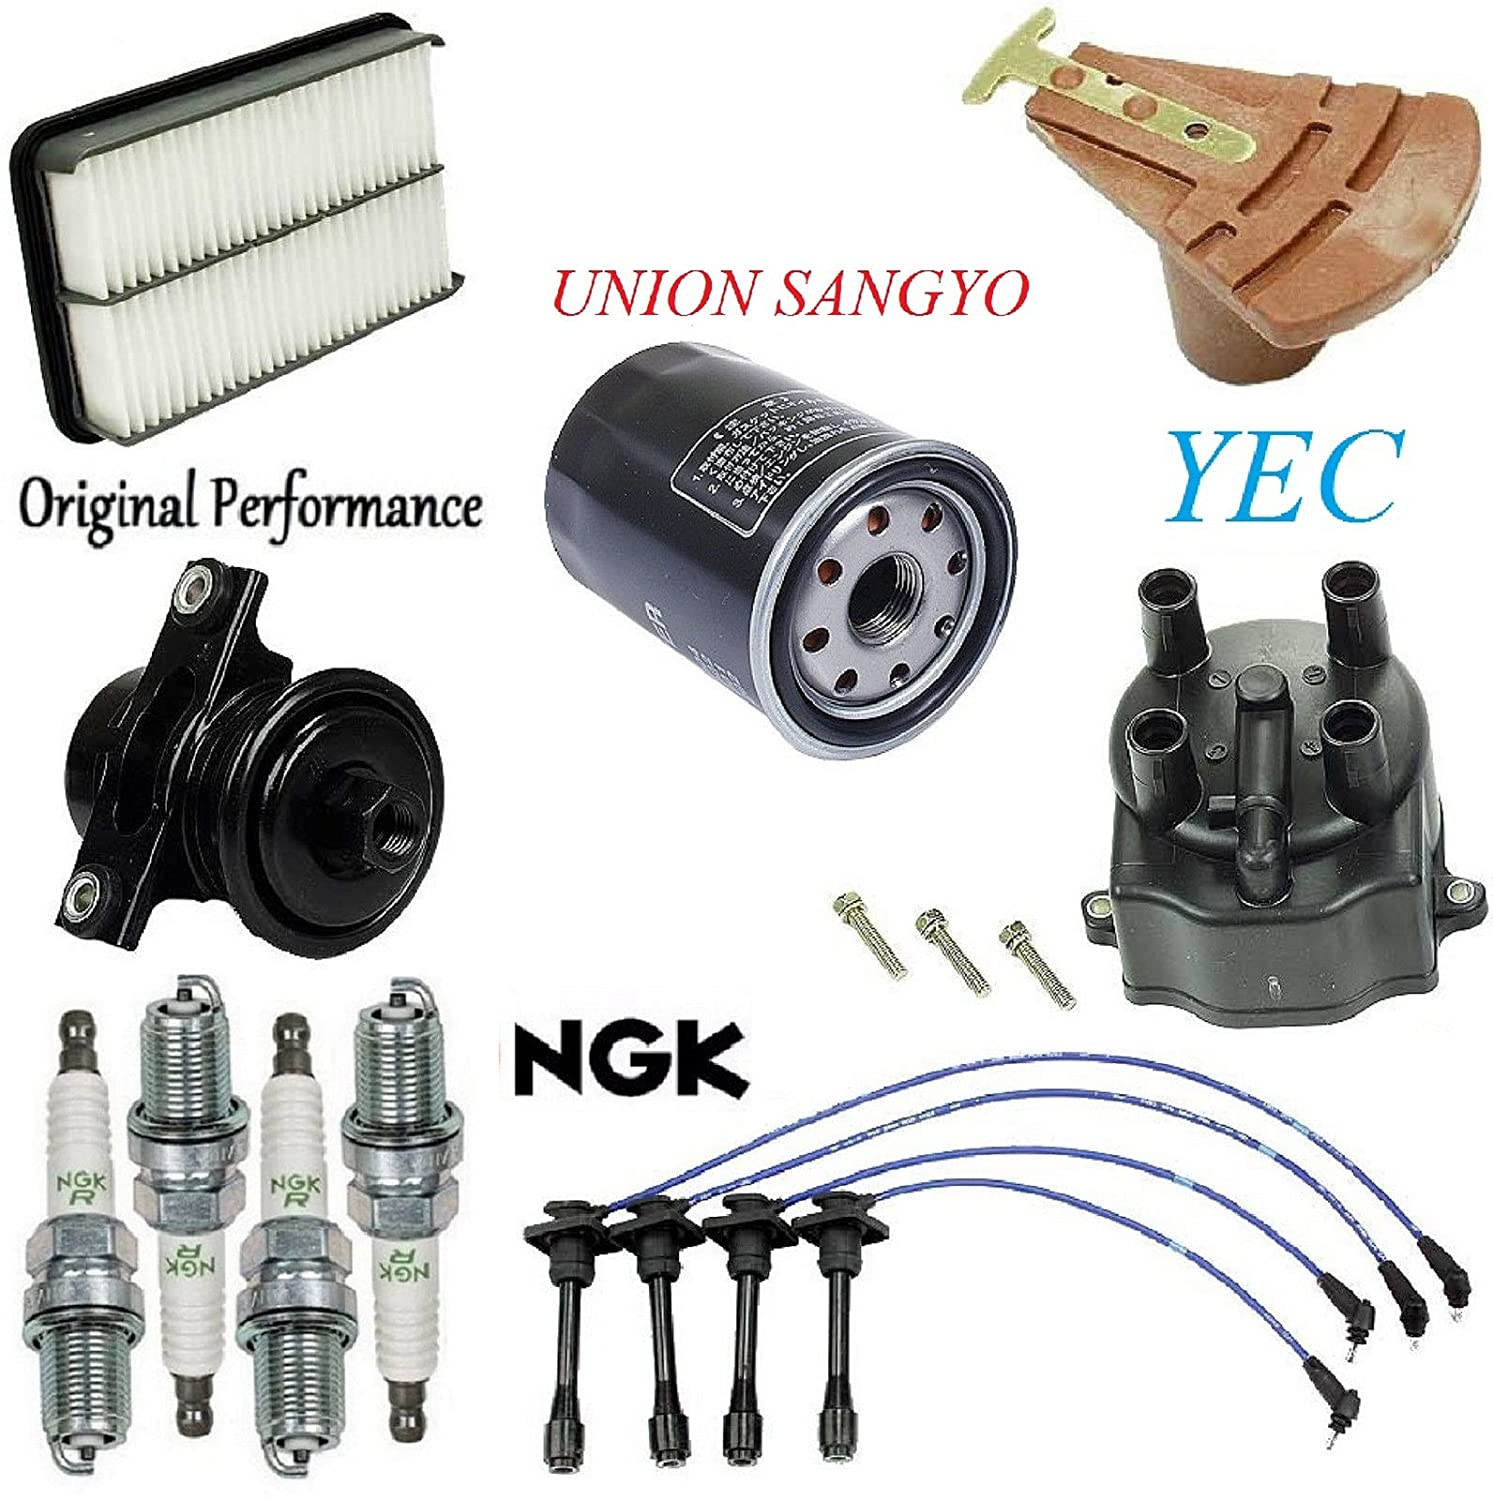 Tune Up Kit Filters Cap Rotor Plugs Wire for Geo Prizm L4; 1.6L 1993-1997 8USAUTO